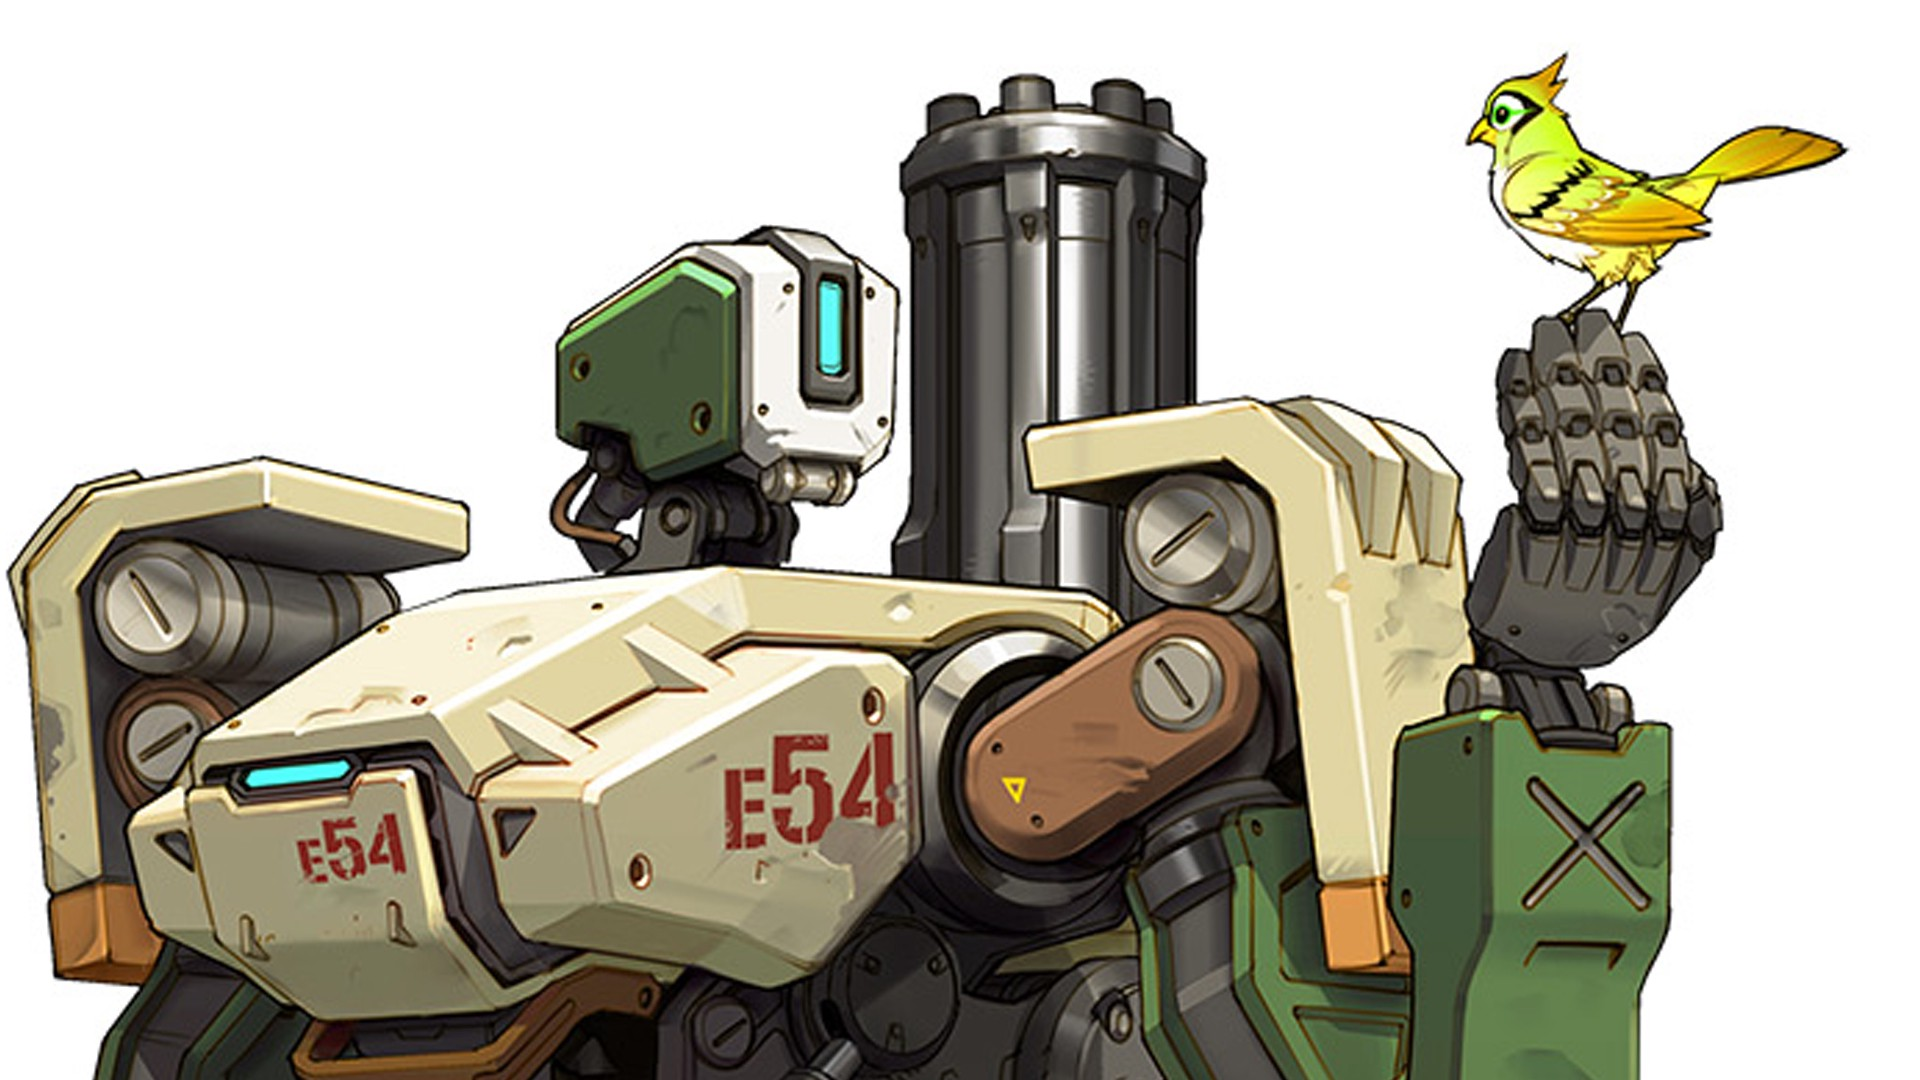 Image from Overwatch